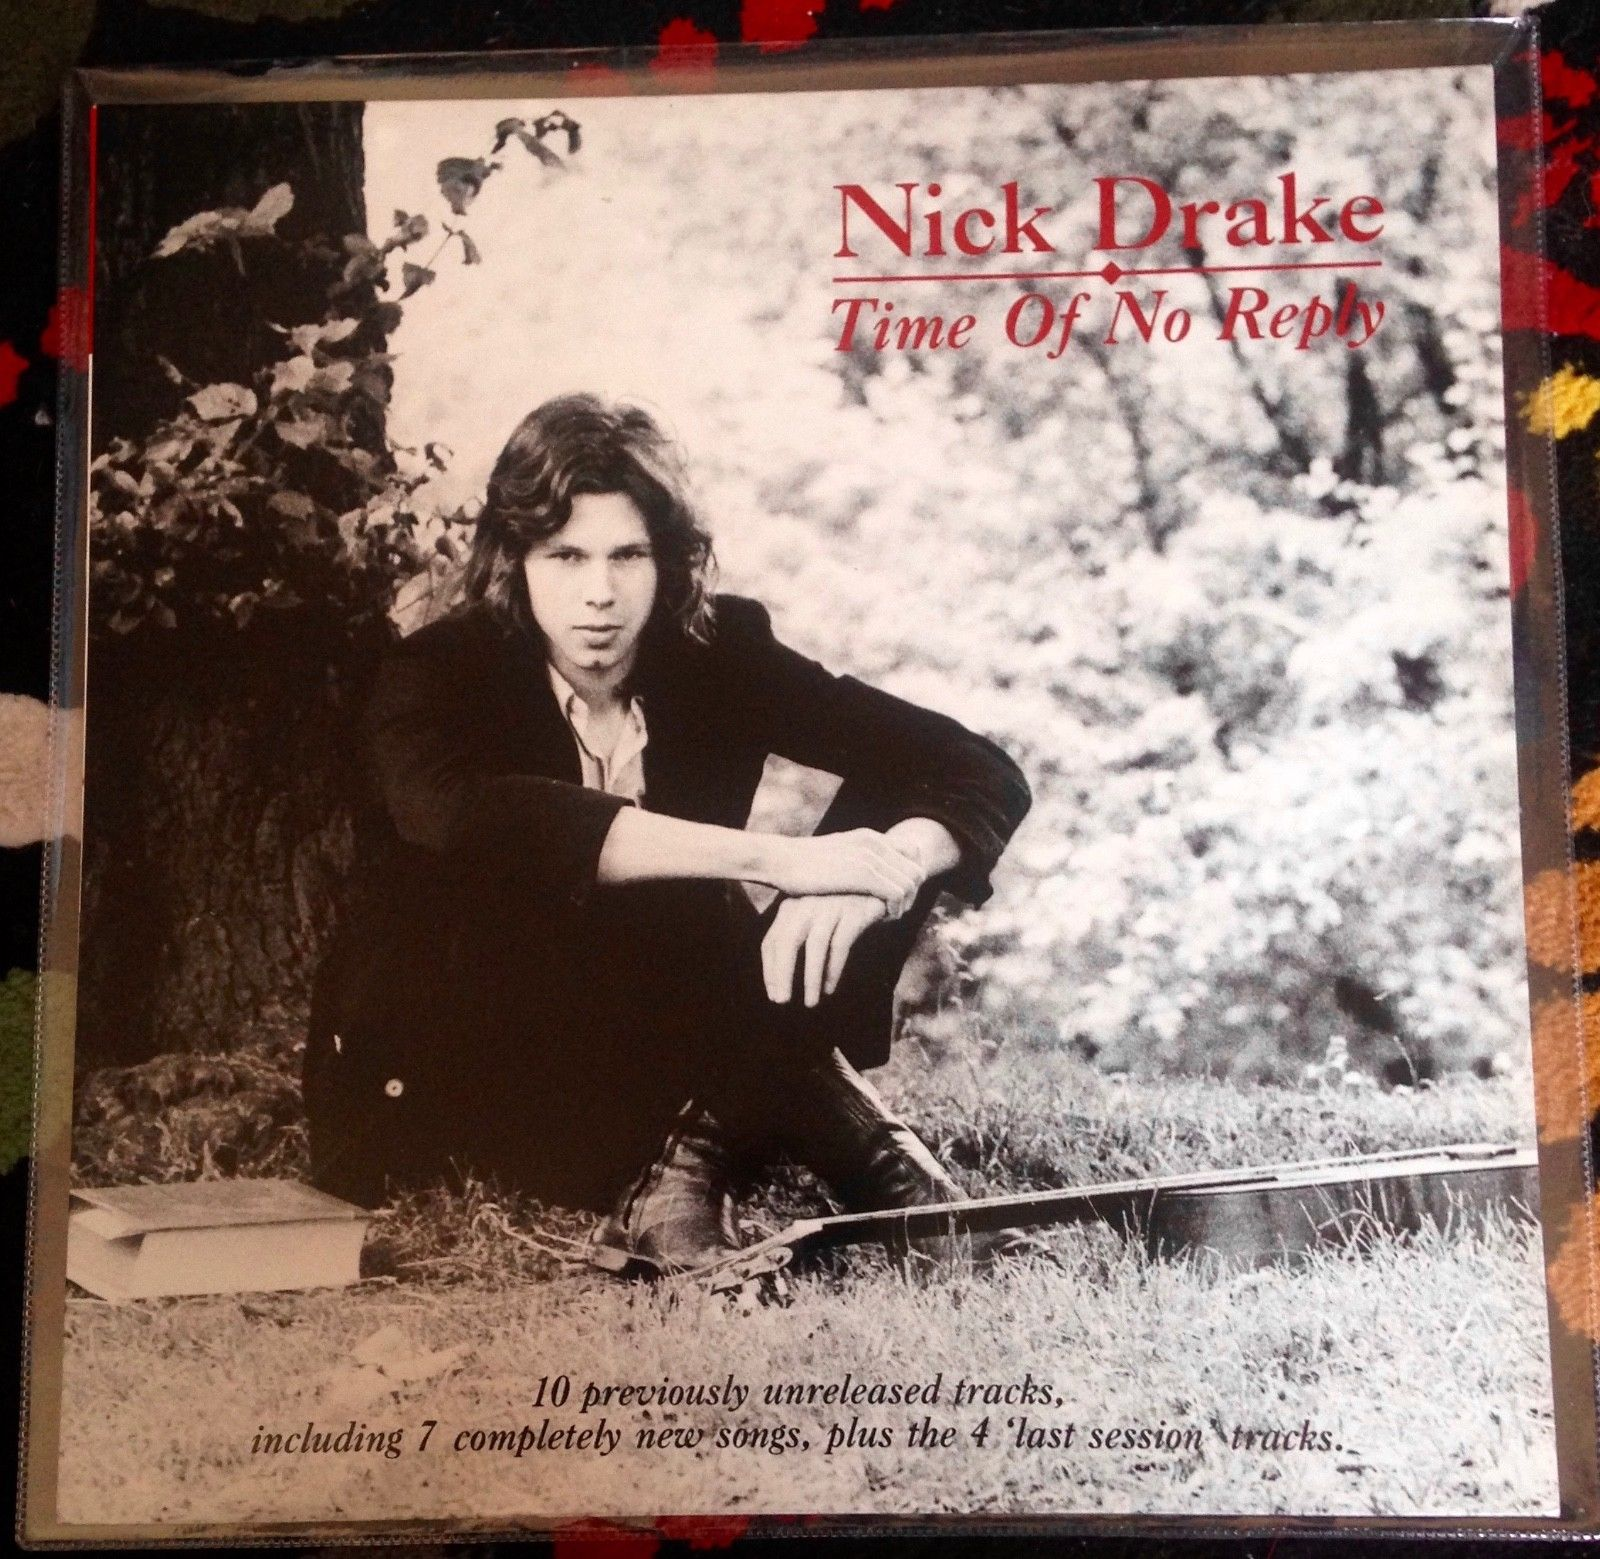 Nick Drake - Time of No Reply - Vinyl LP - Hannibal Records - 1986